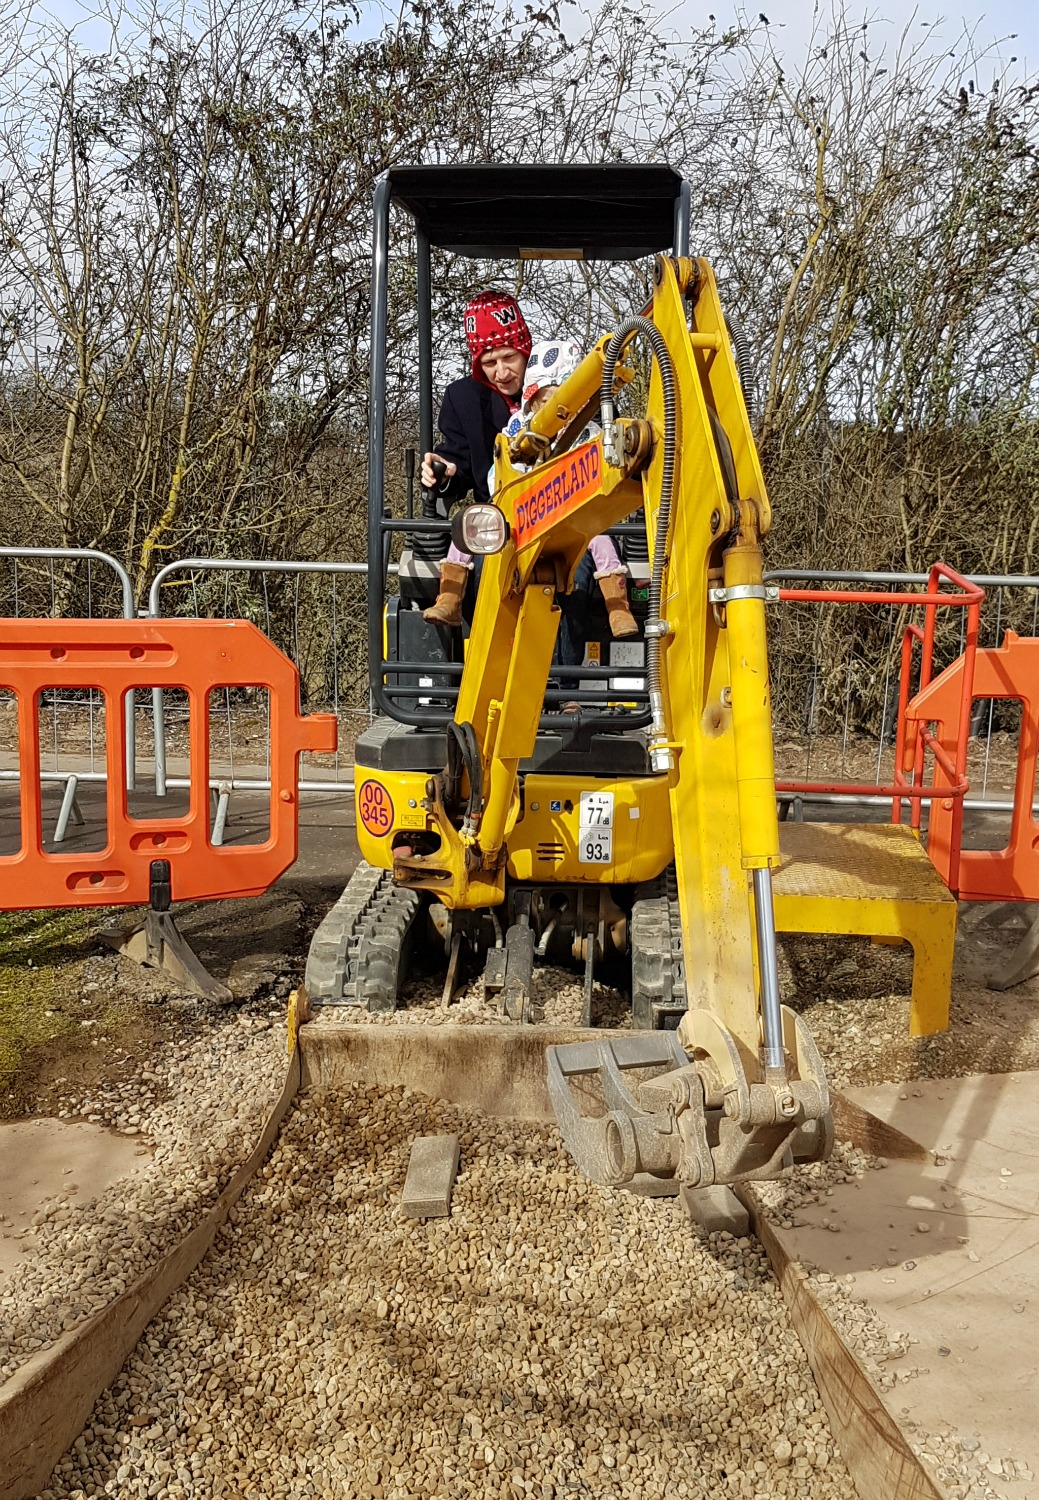 Hunting for bricks with a digger at Diggerland Kent - one of the attractions on this family day out